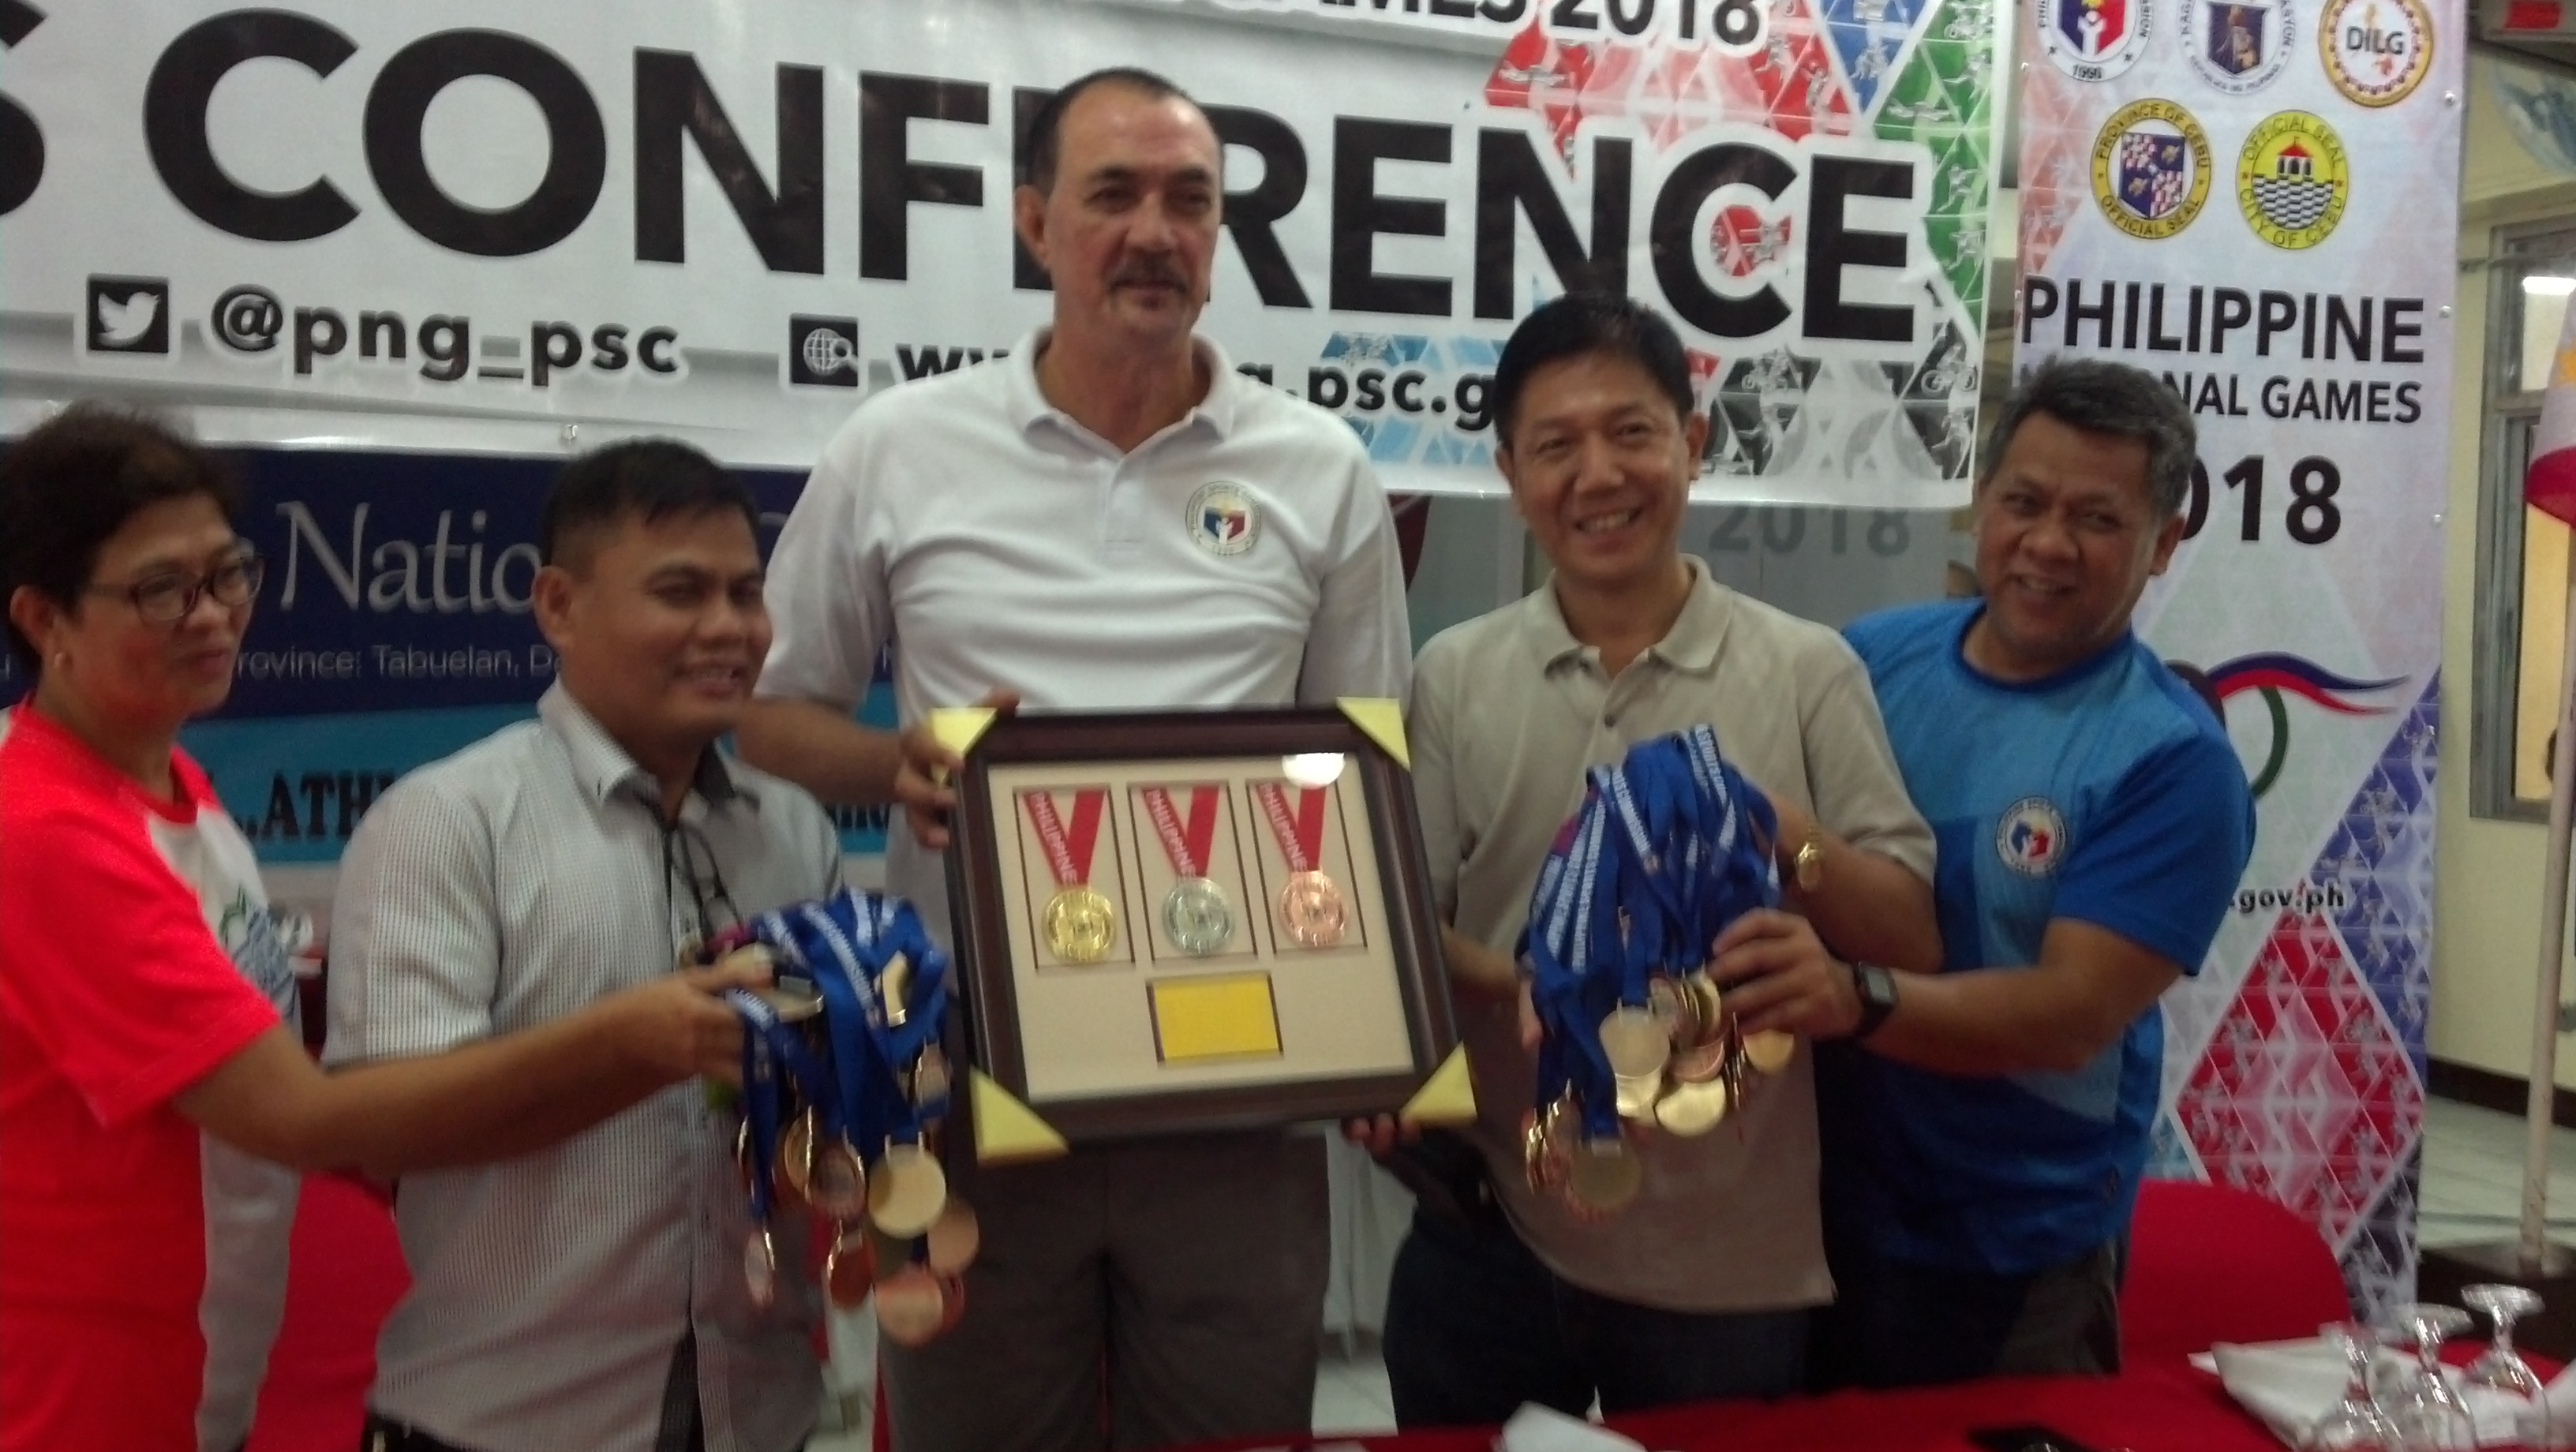 P15 million prize up for grabs in Philippine National Games 2018